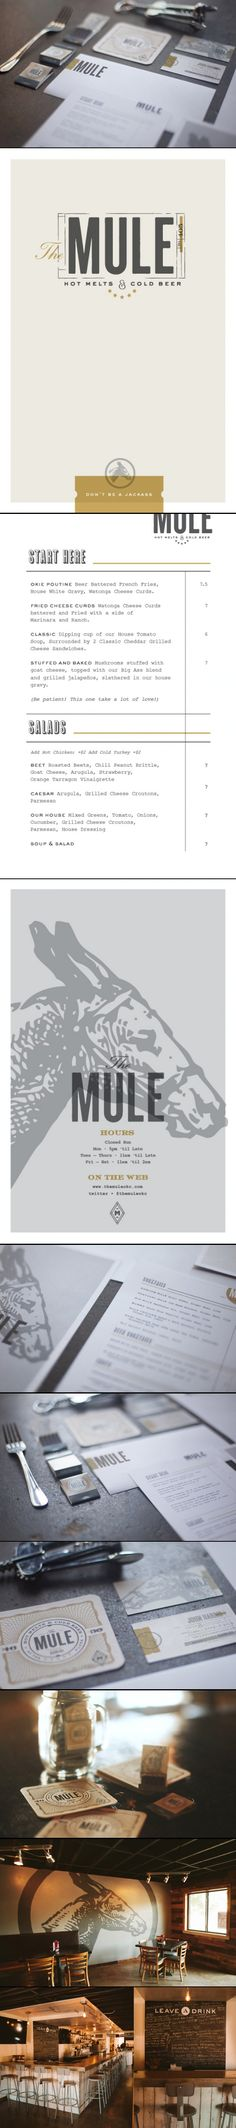 The Mule | Foundry Collective